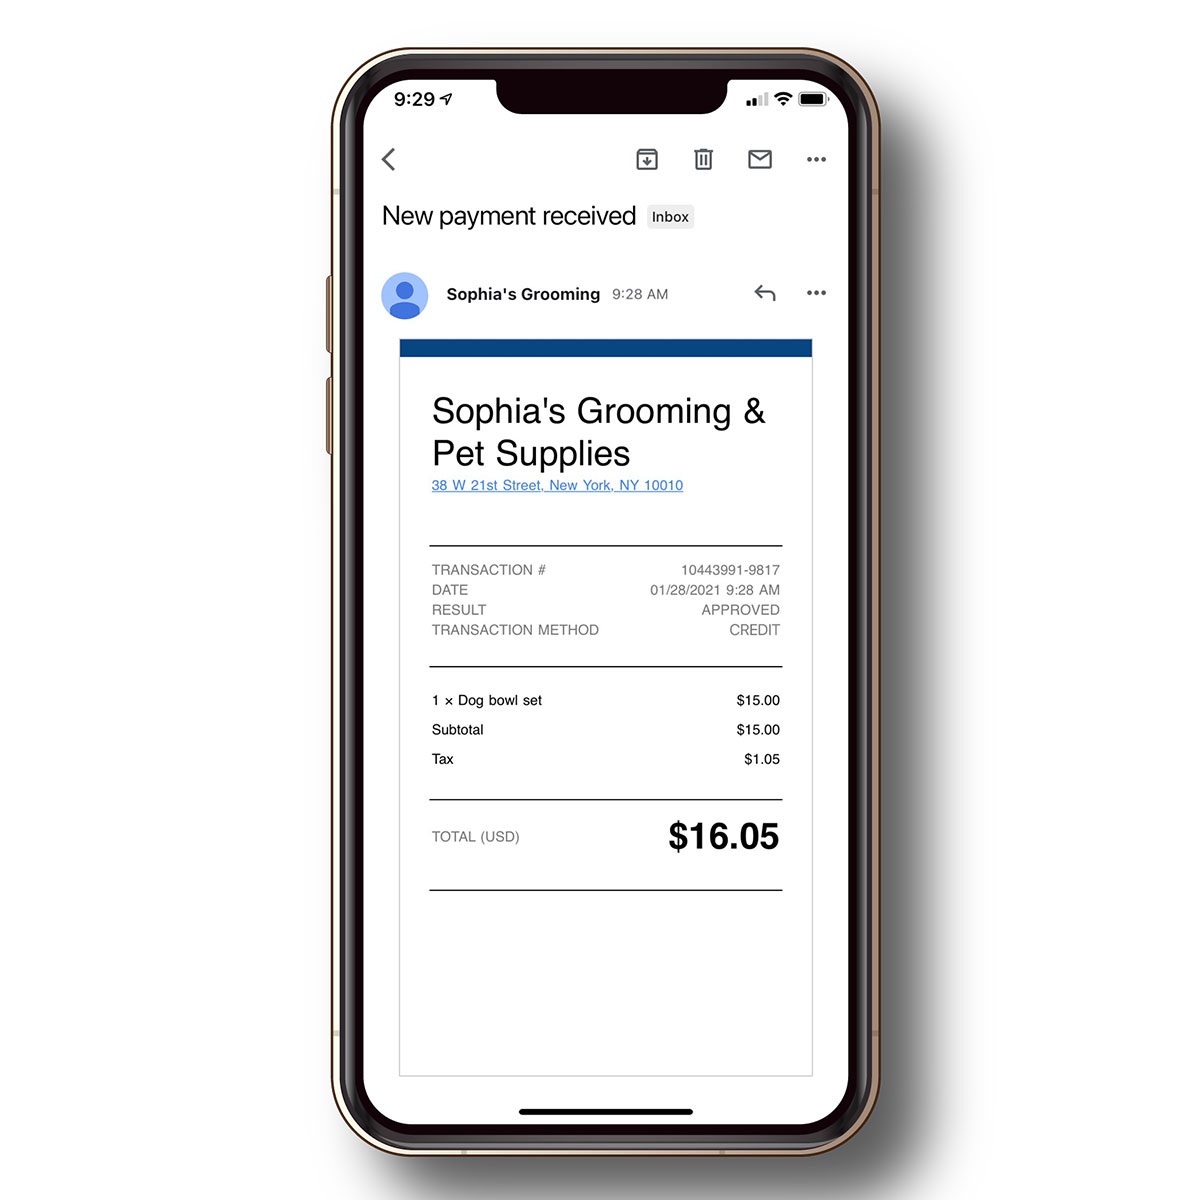 Email or text payment receipts